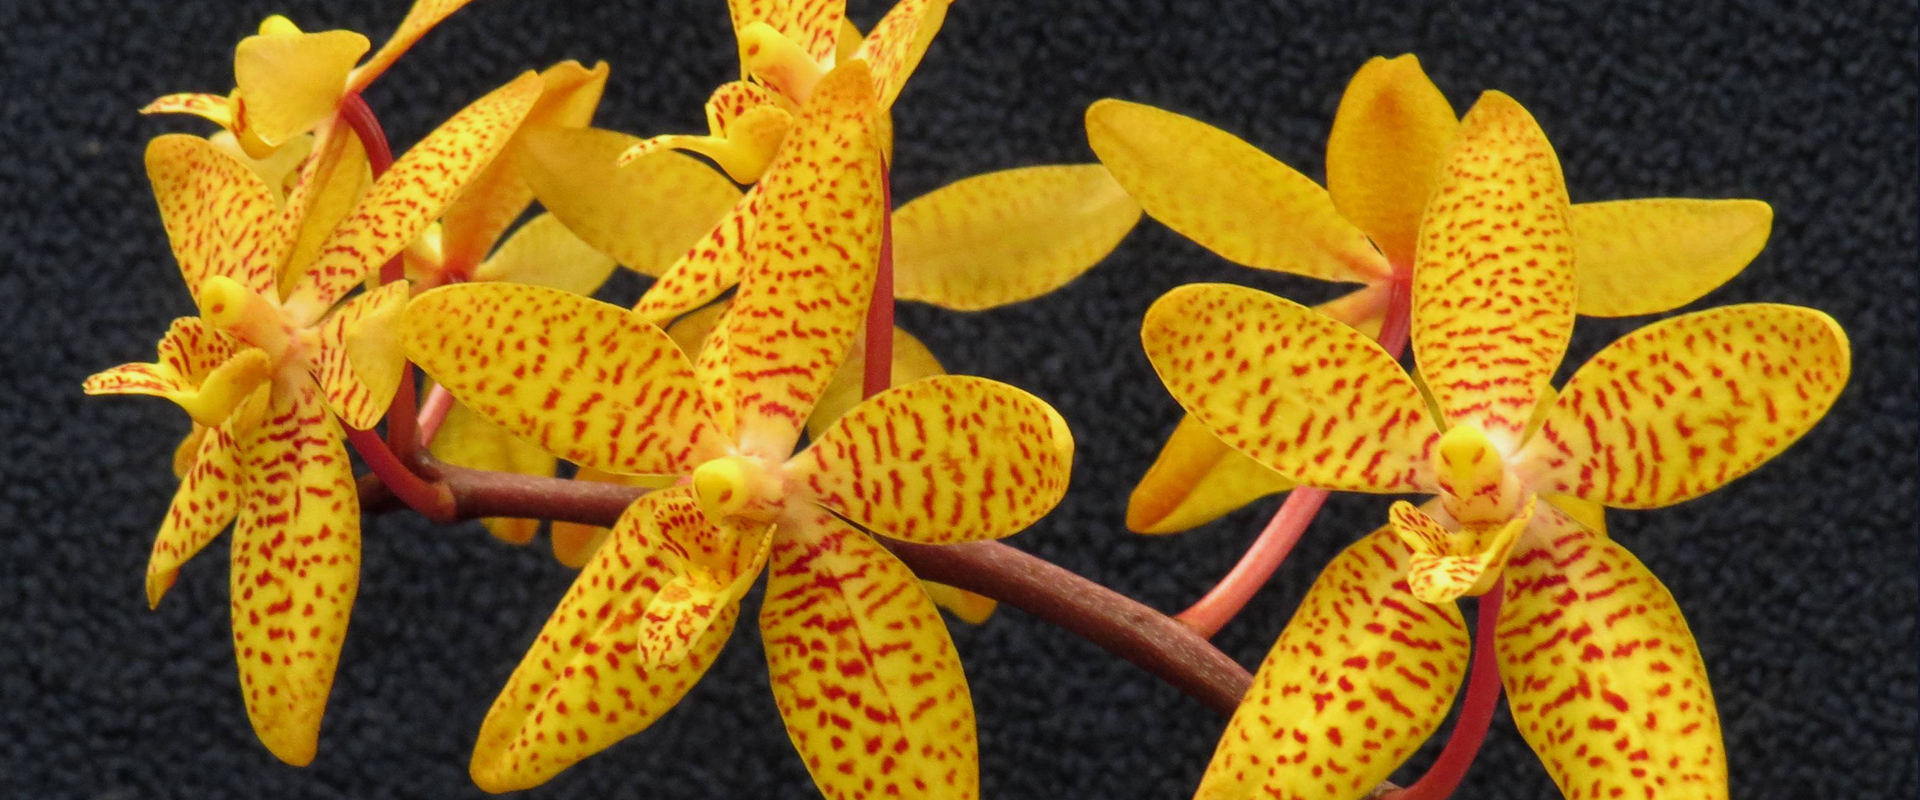 Orchid Show, Victoria BC - Rules and Regulations